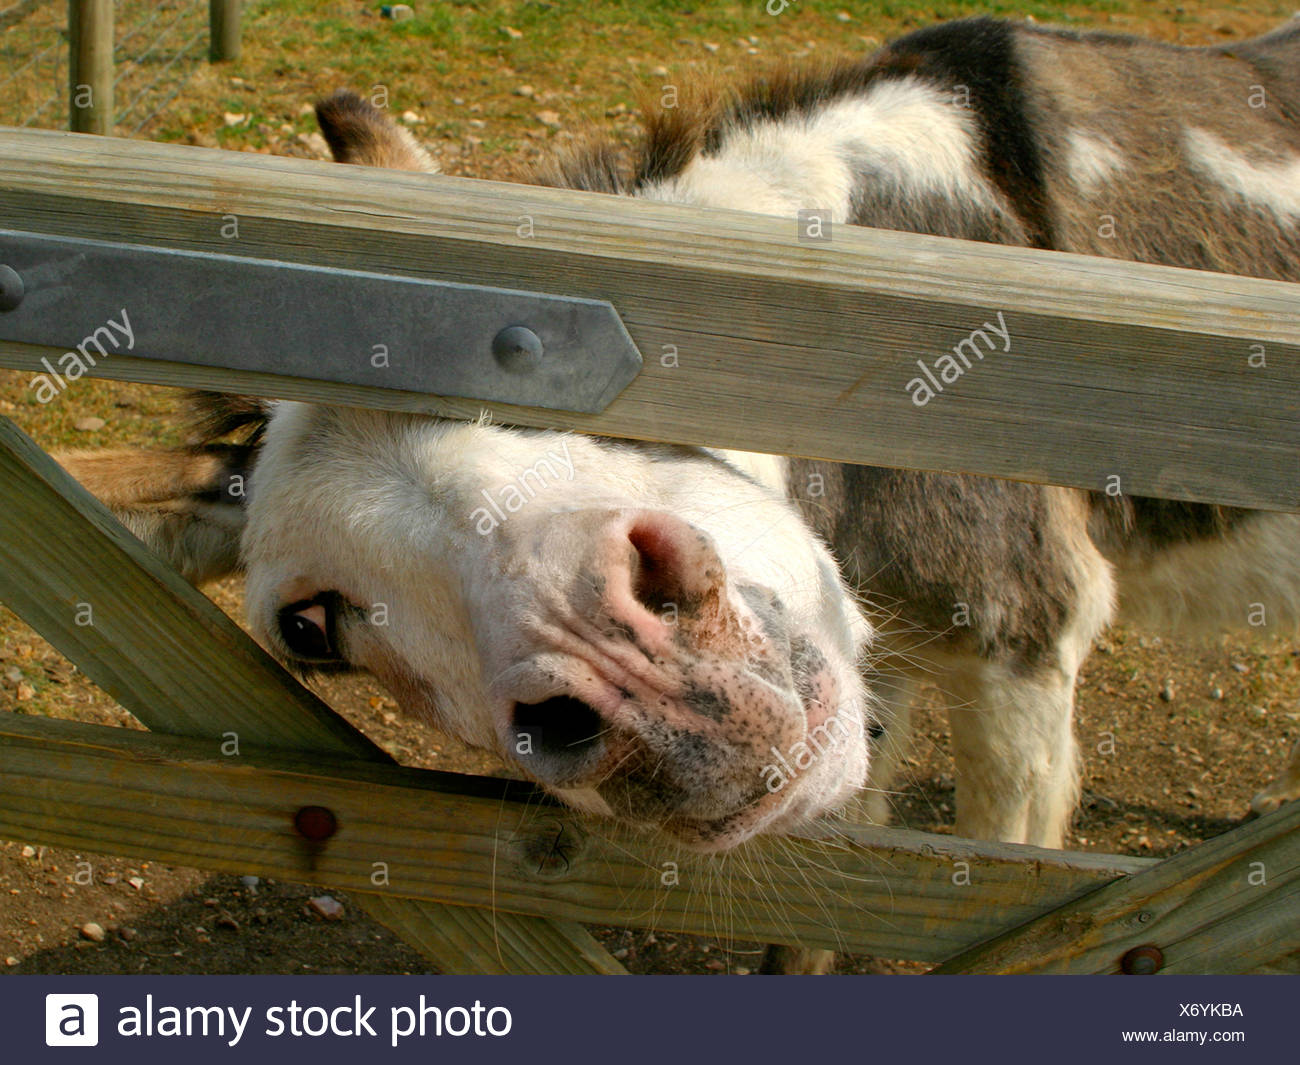 Donkey peering from a gate. - Stock Image